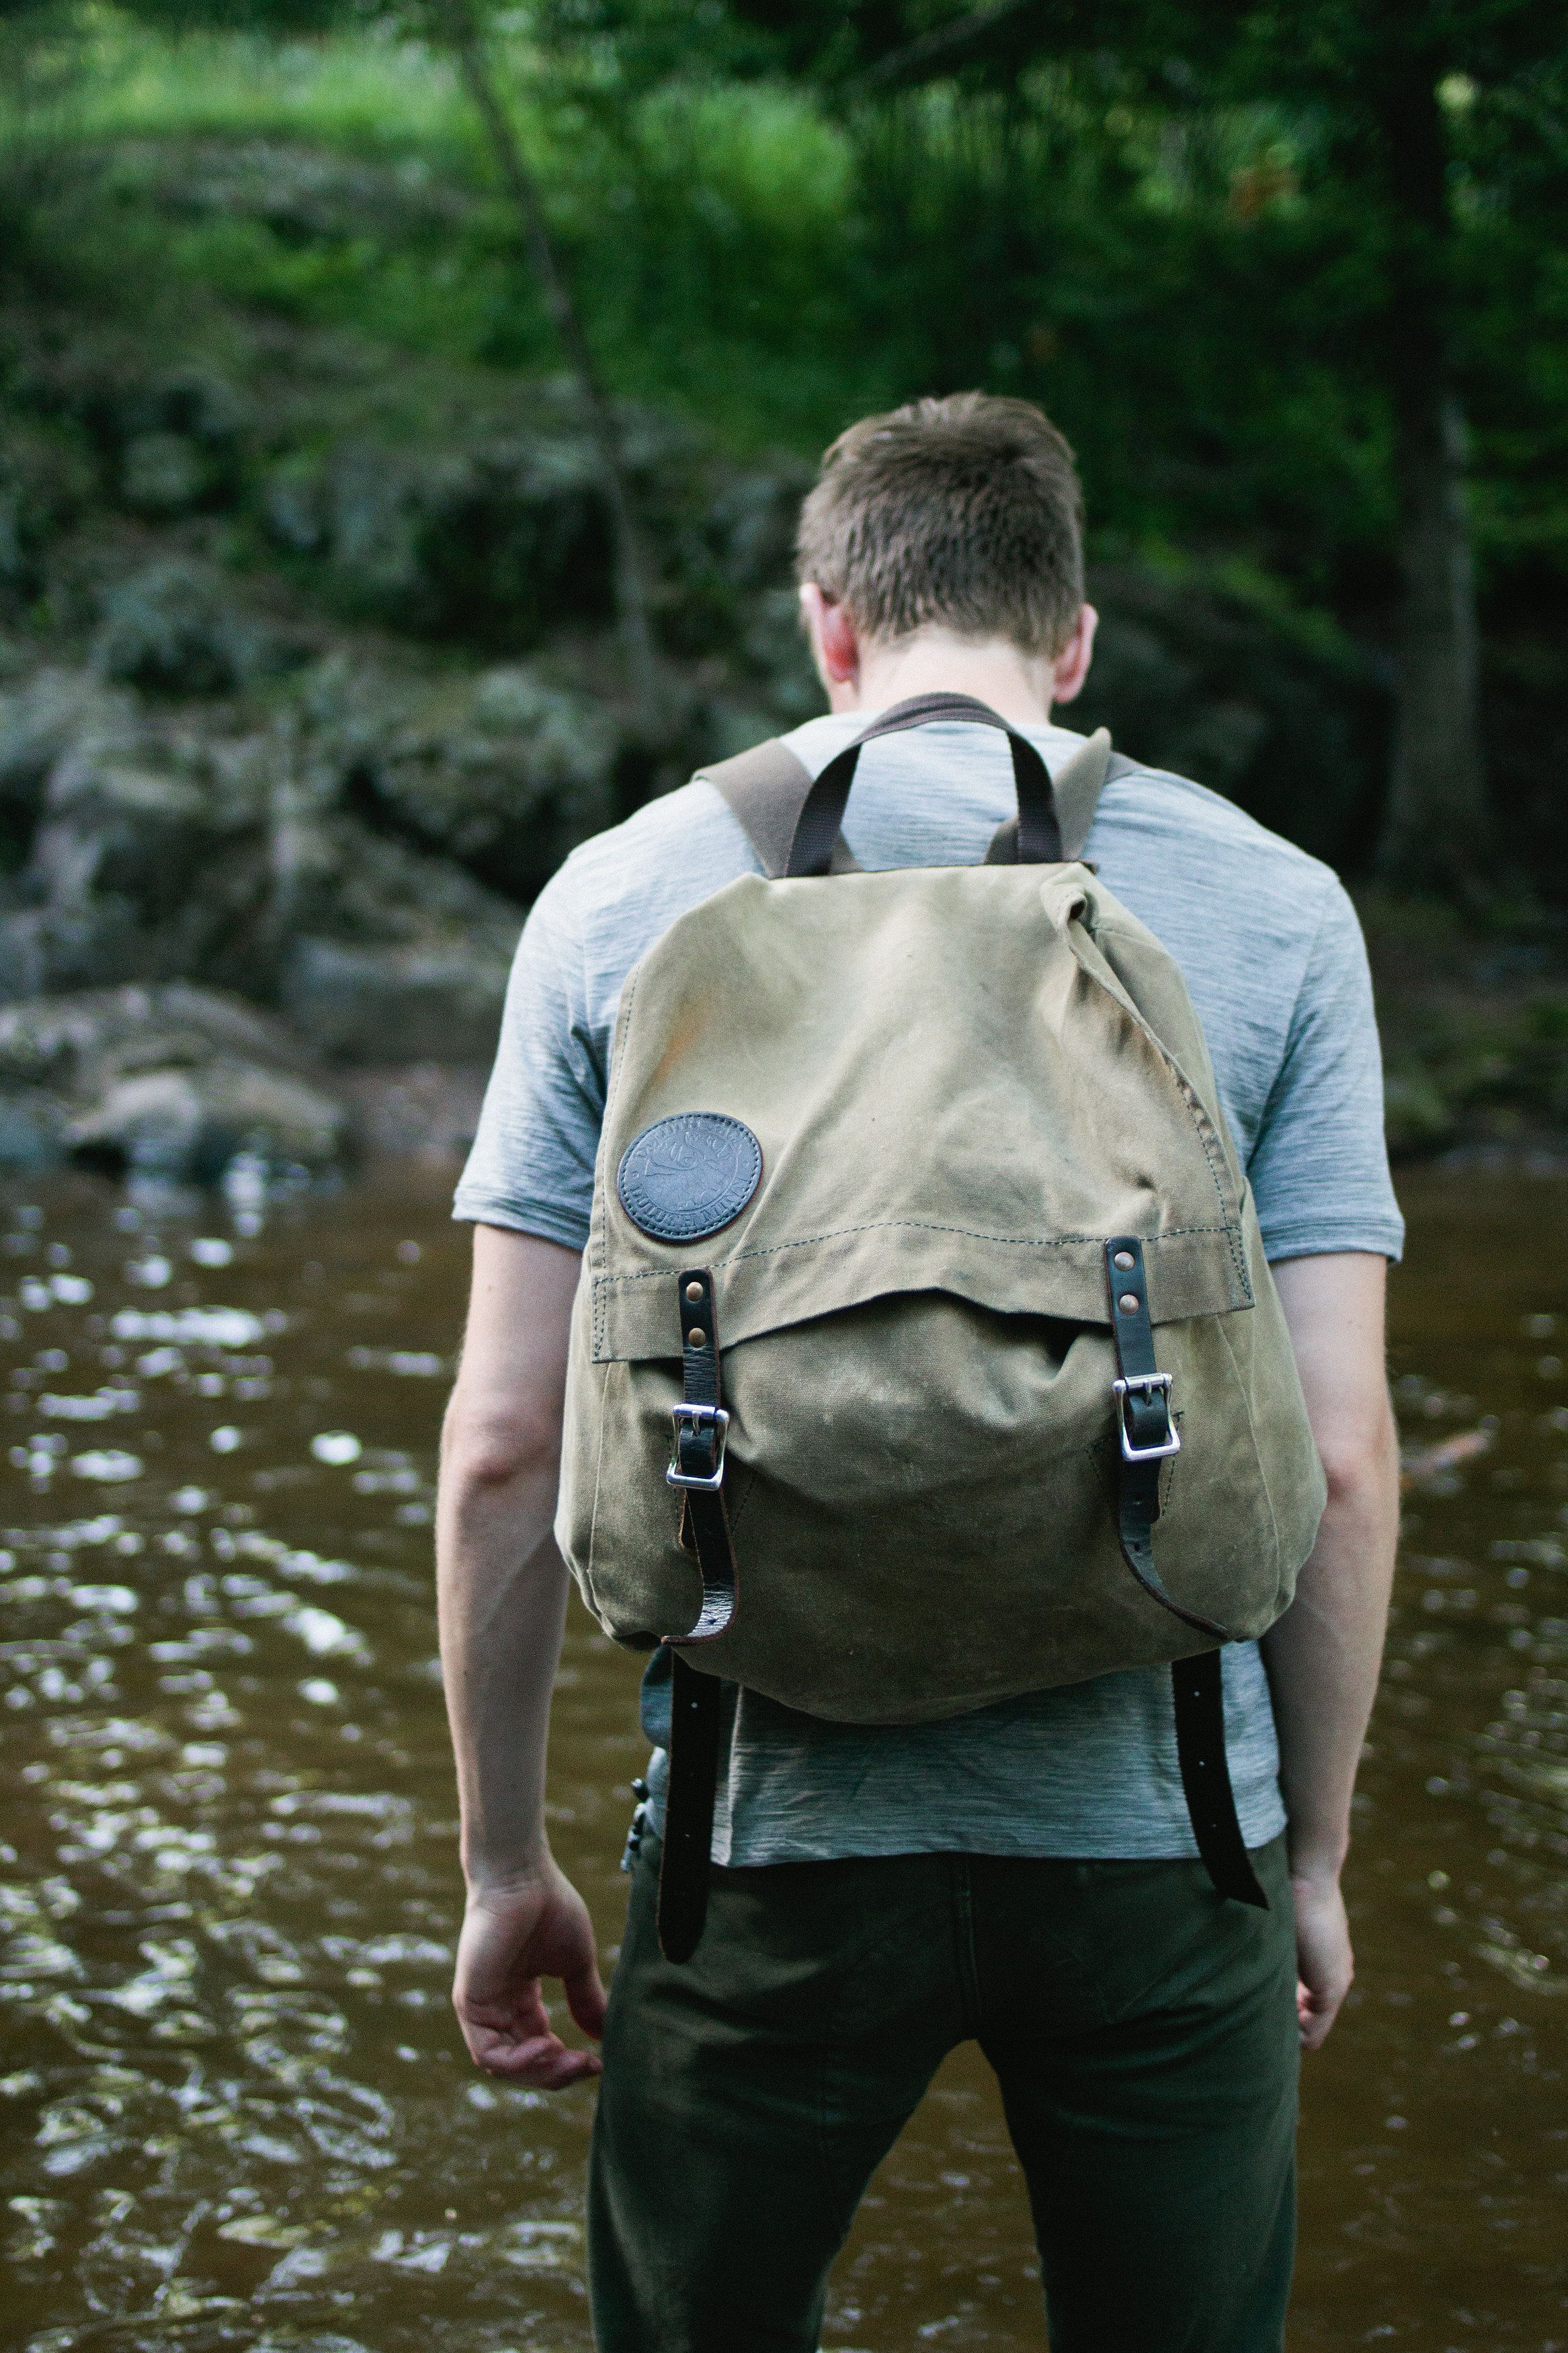 www.duluthpack.com | Duluth Pack is the oldest canvas and leather ...